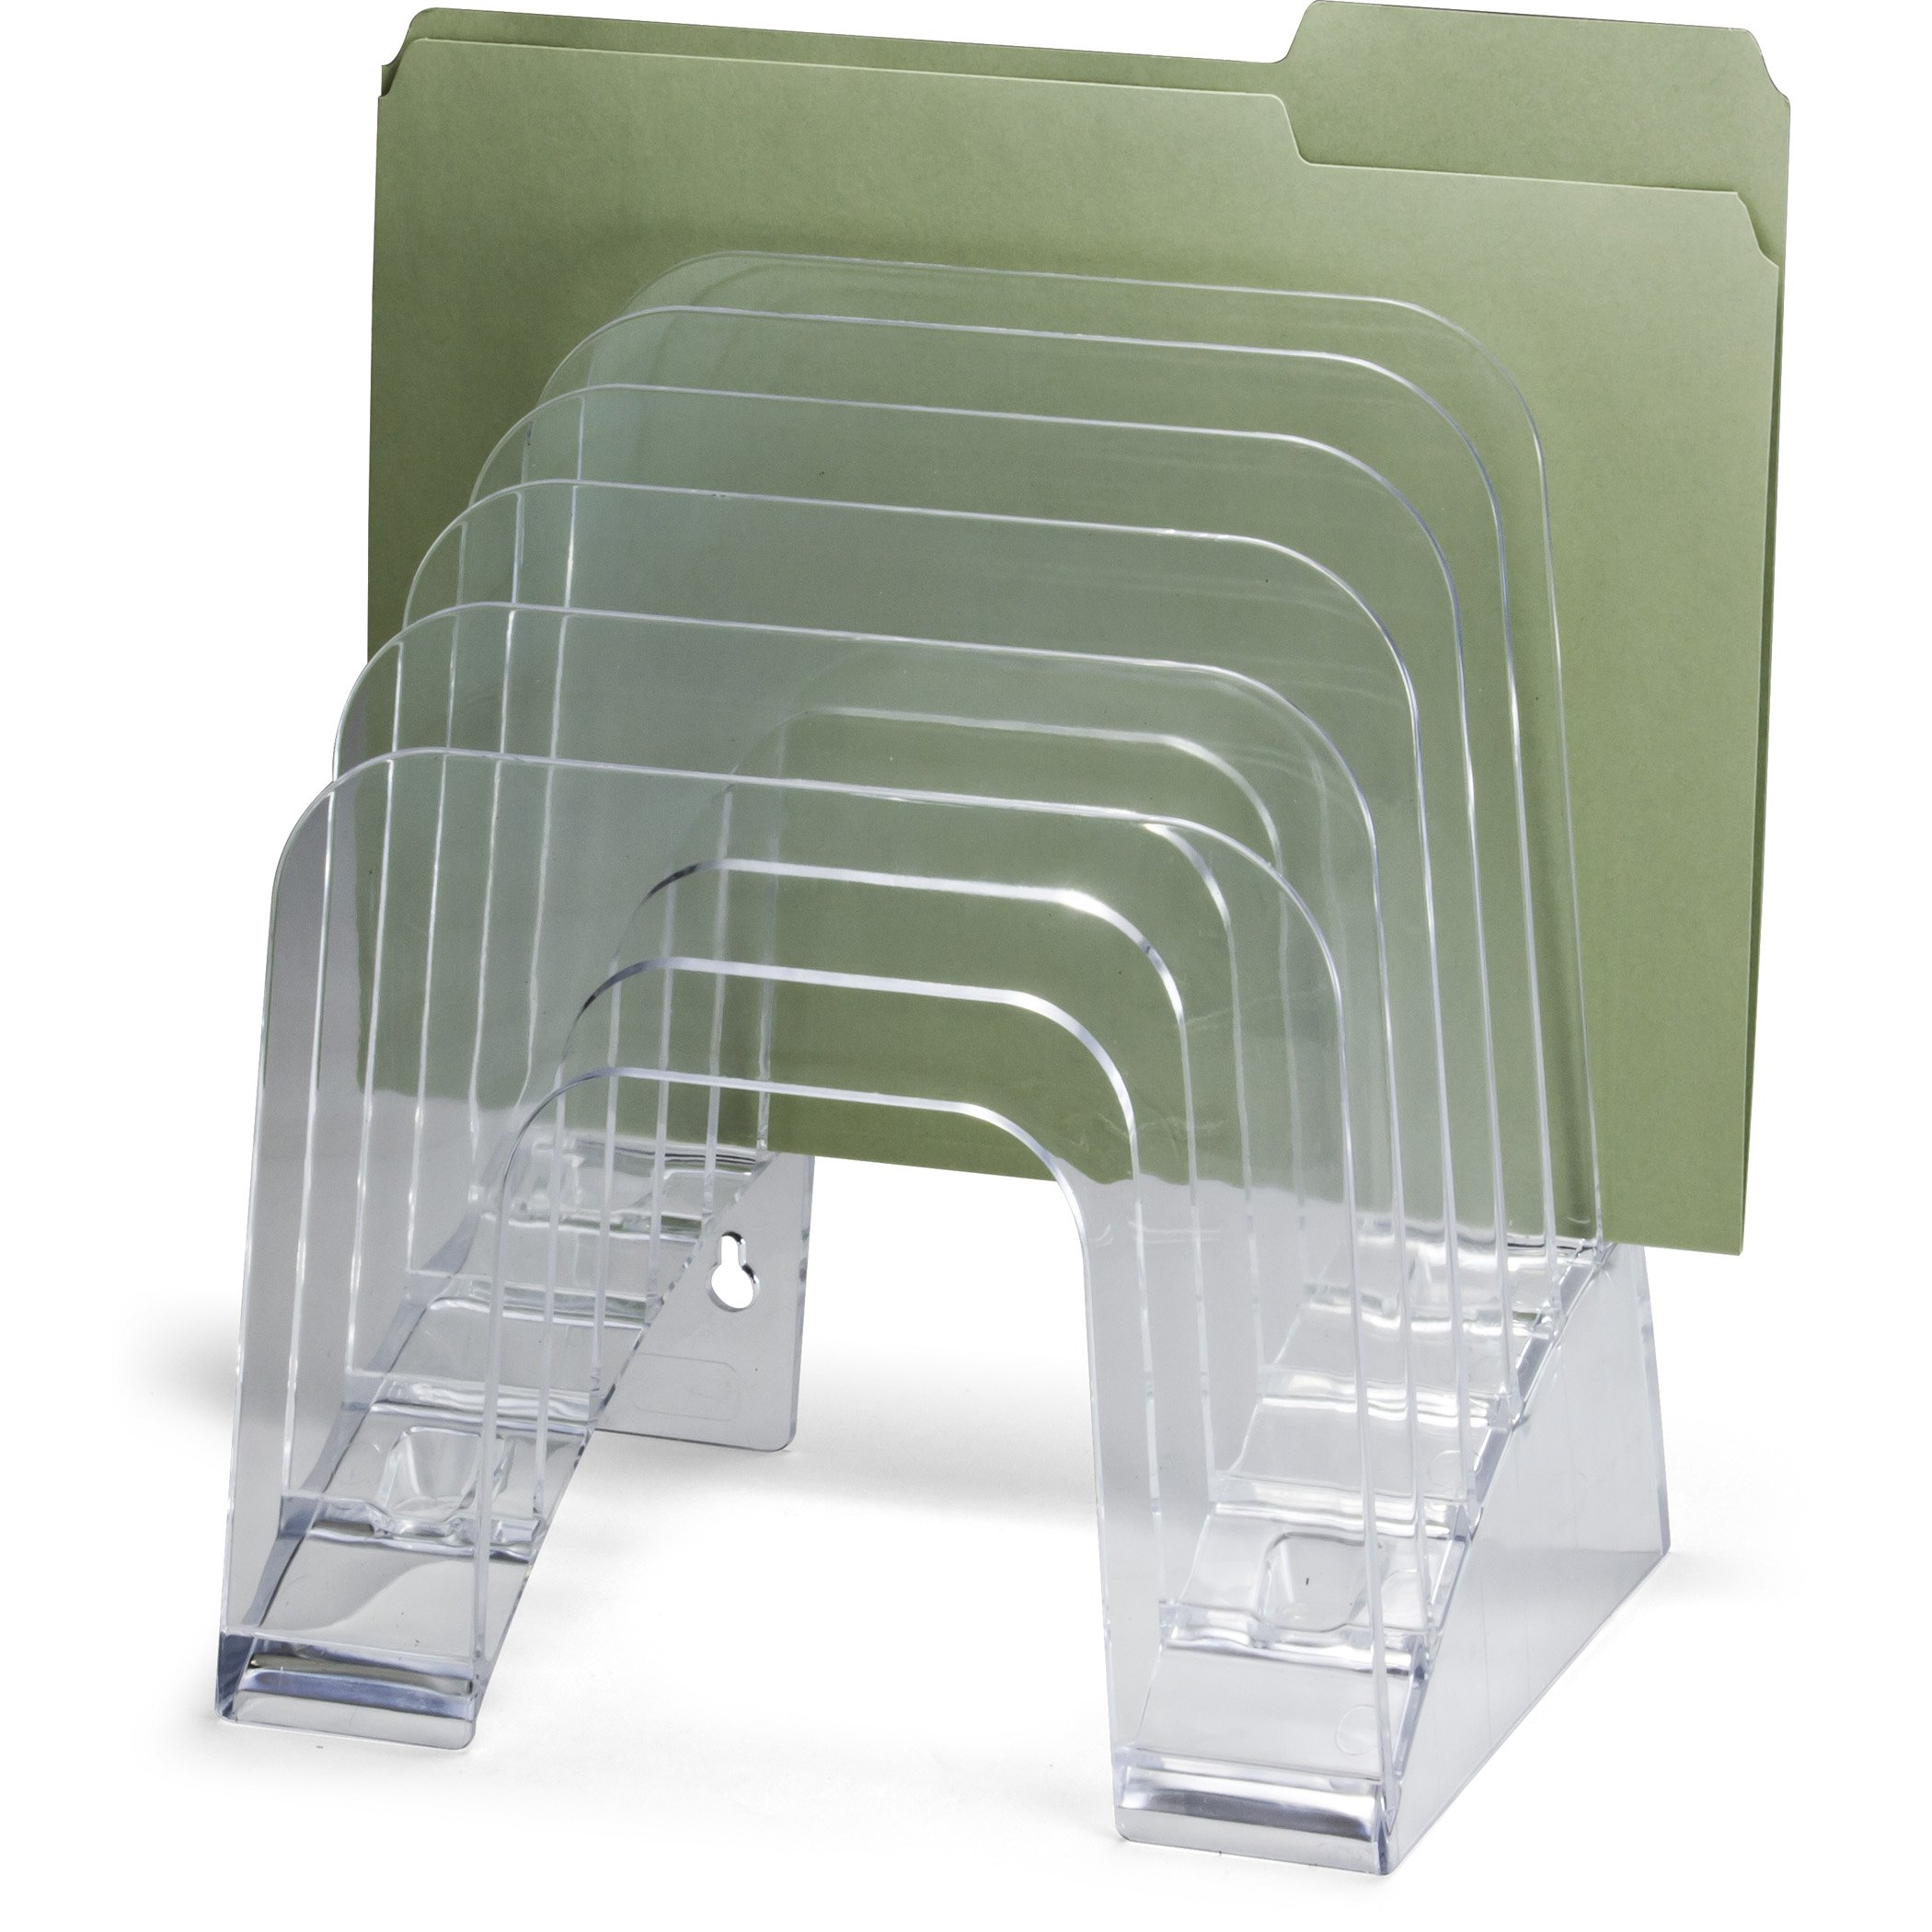 OfficemateOIC Jumbo Incline Sorter, 6 Compartment, Holds Letter and A4 Size, Clear (22934) by Officemate